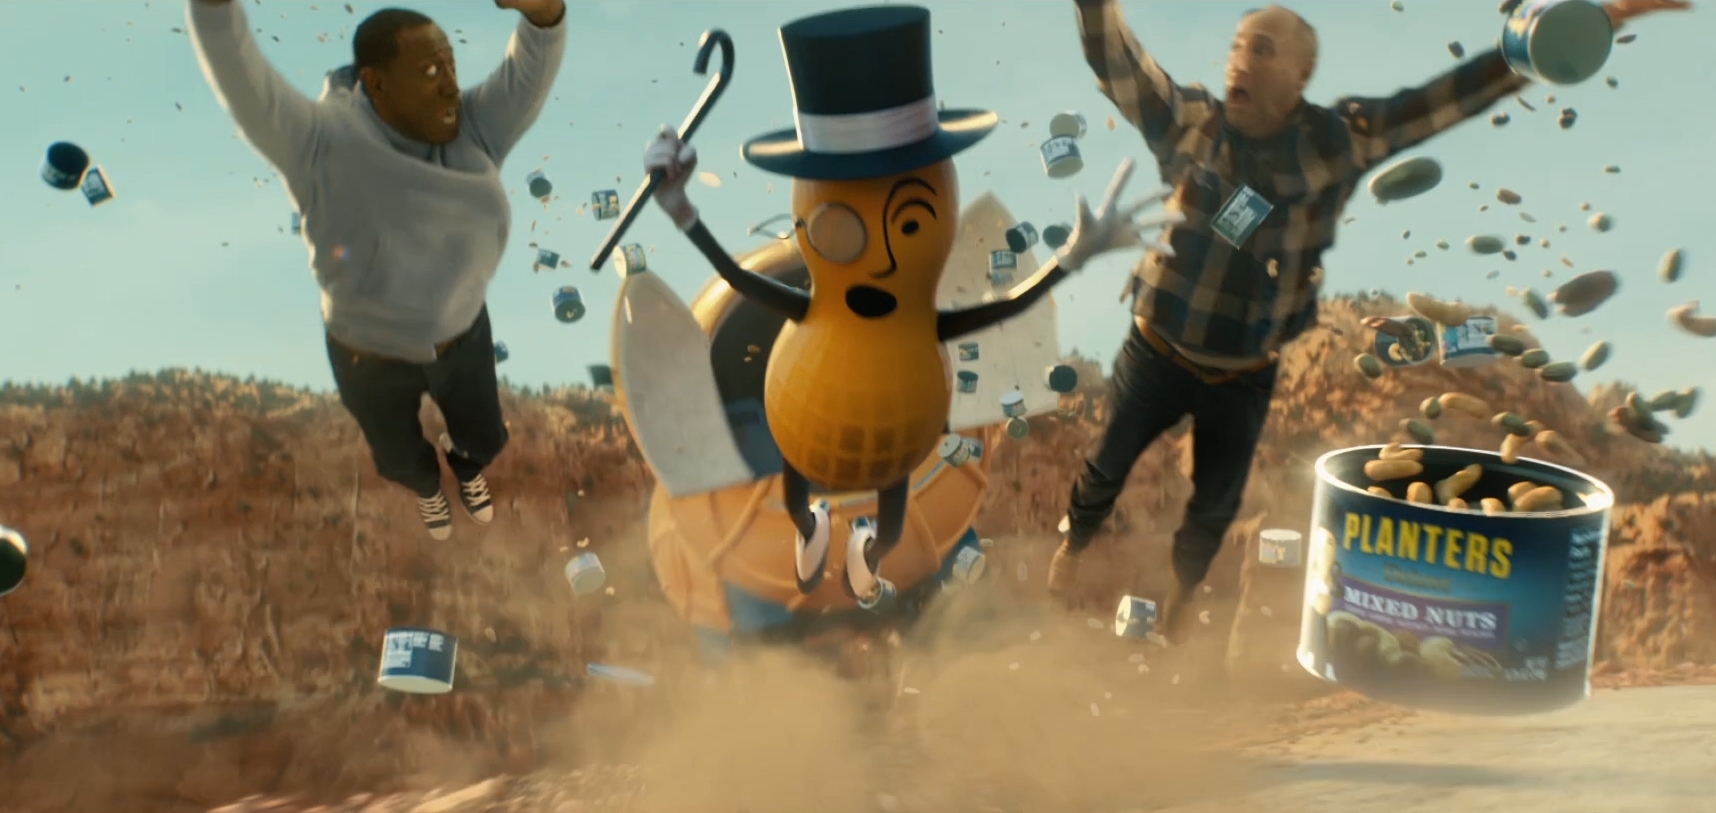 MR. PEANUT Passes Away at 104 Years Old, Sacrificing Himself to Save Friends Matt Walsh and Wesley Snipes in New Super Bowl Pre-Game Ad